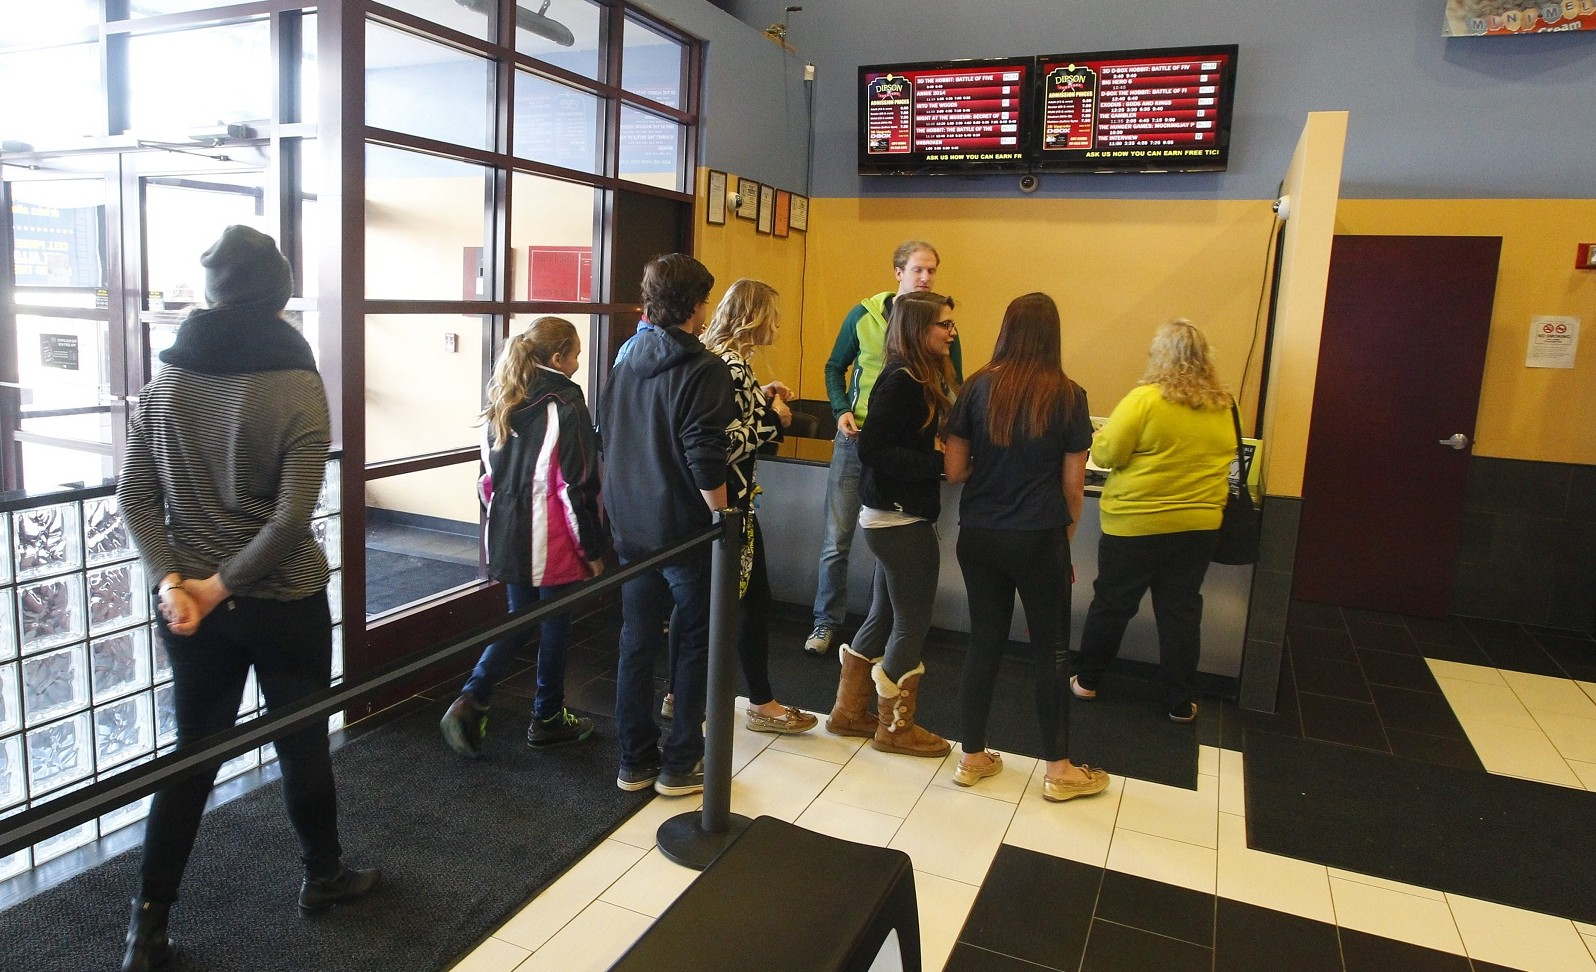 Patrons arrive at the Lancaster Dipson Flix Theatre for the first showing locally of 'The Interview.' (John Hickey/Buffalo News)